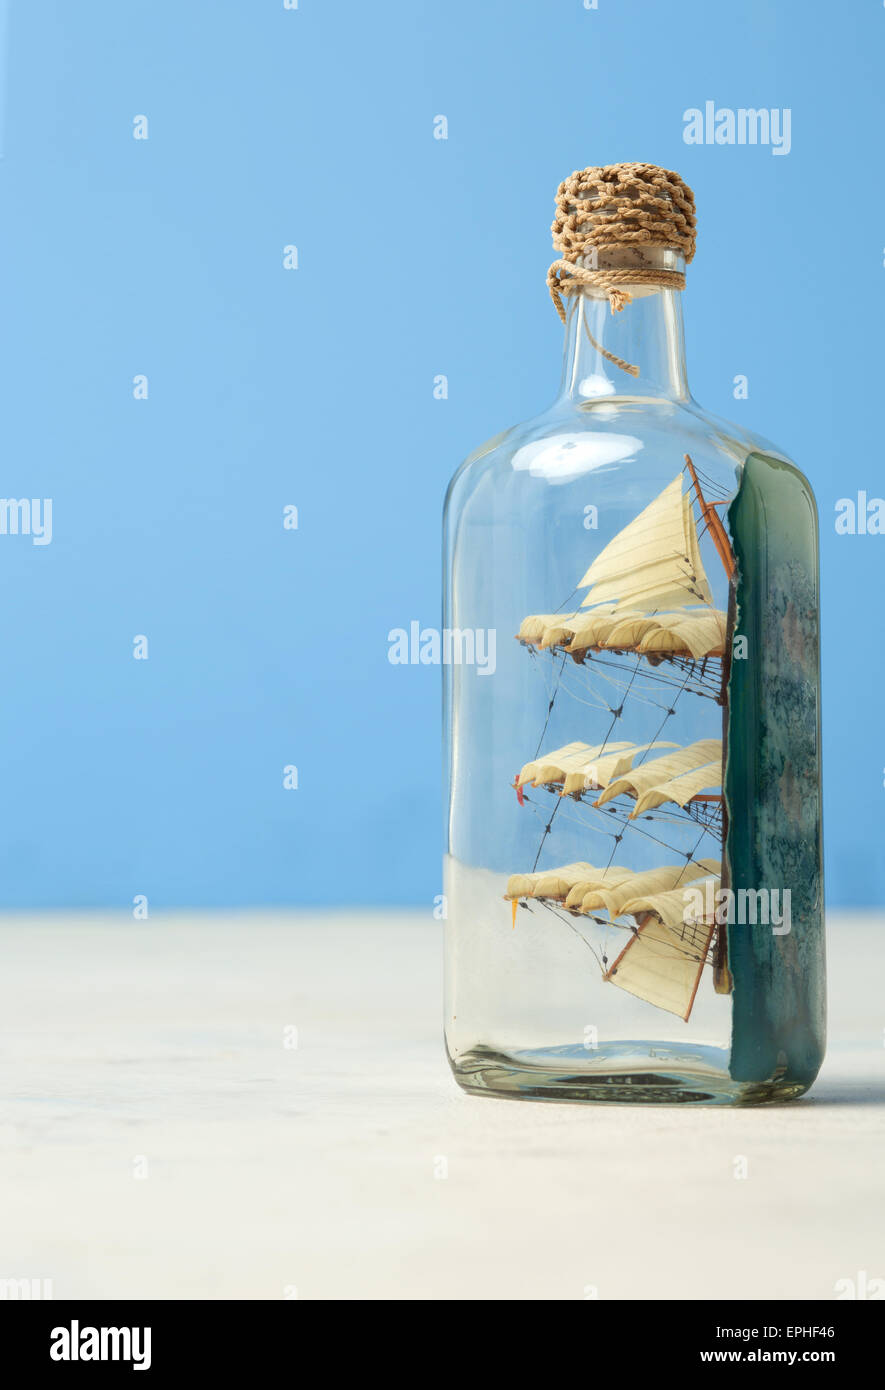 toy boat in a glass bottle - Stock Image